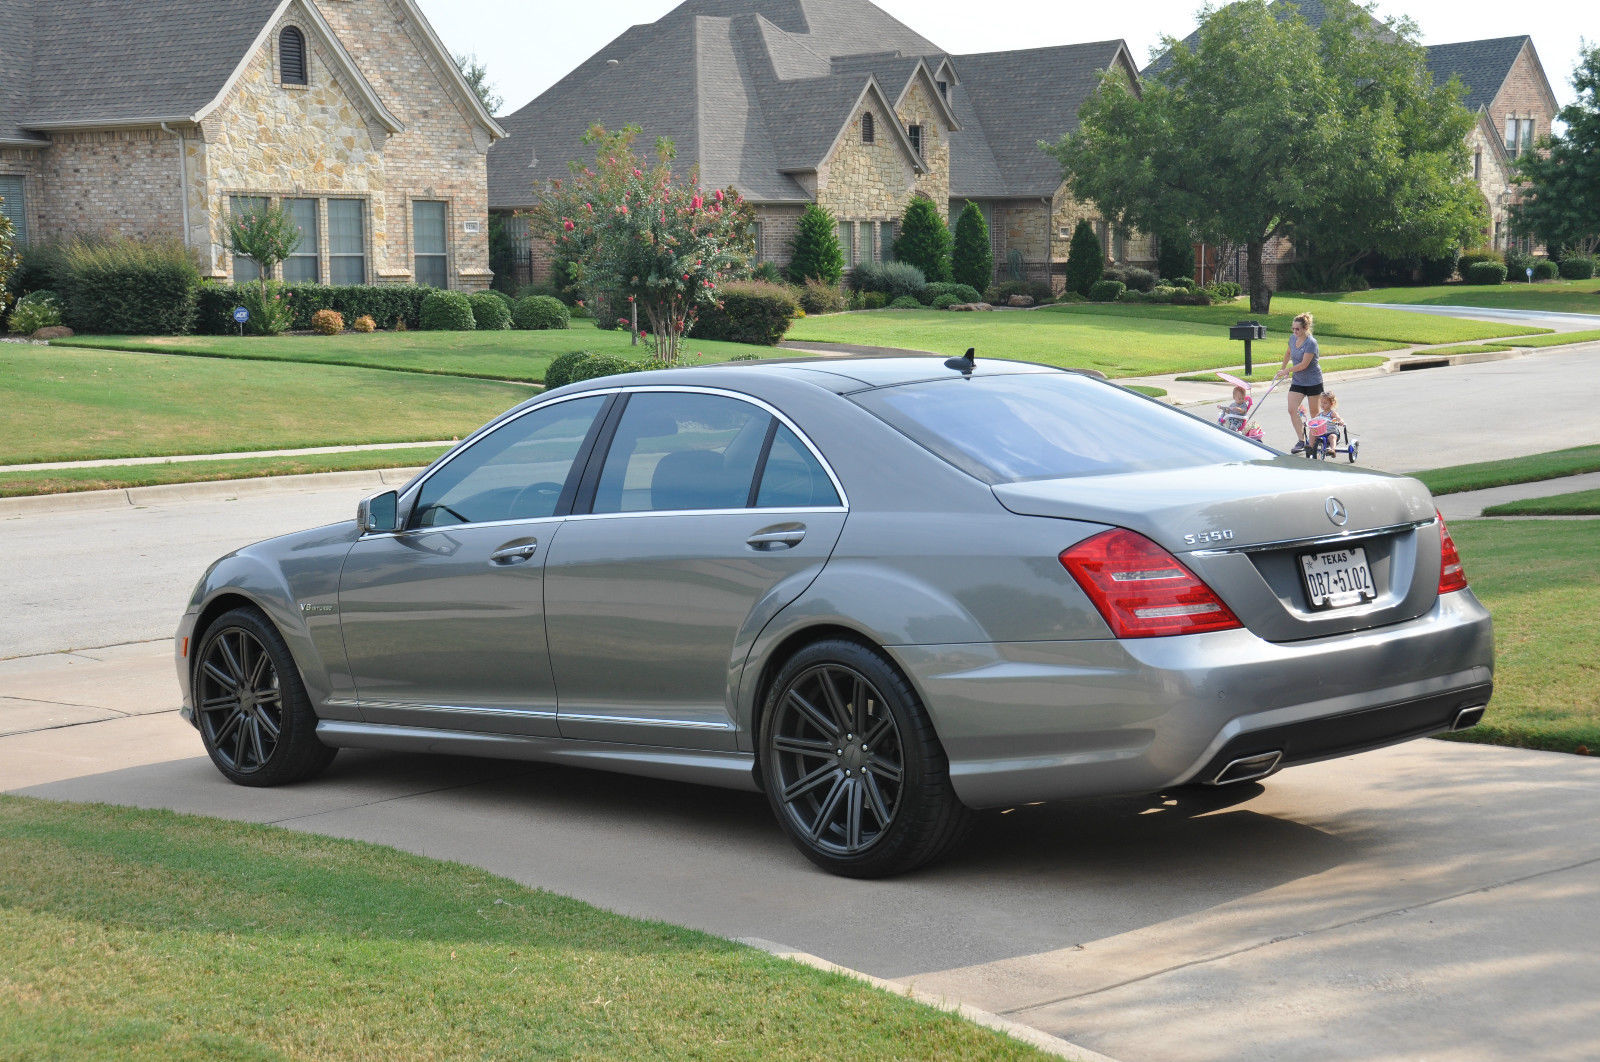 Mercedes benz w221 s550 on 20 vossen wheels benztuning for Mercedes benz s550 pictures